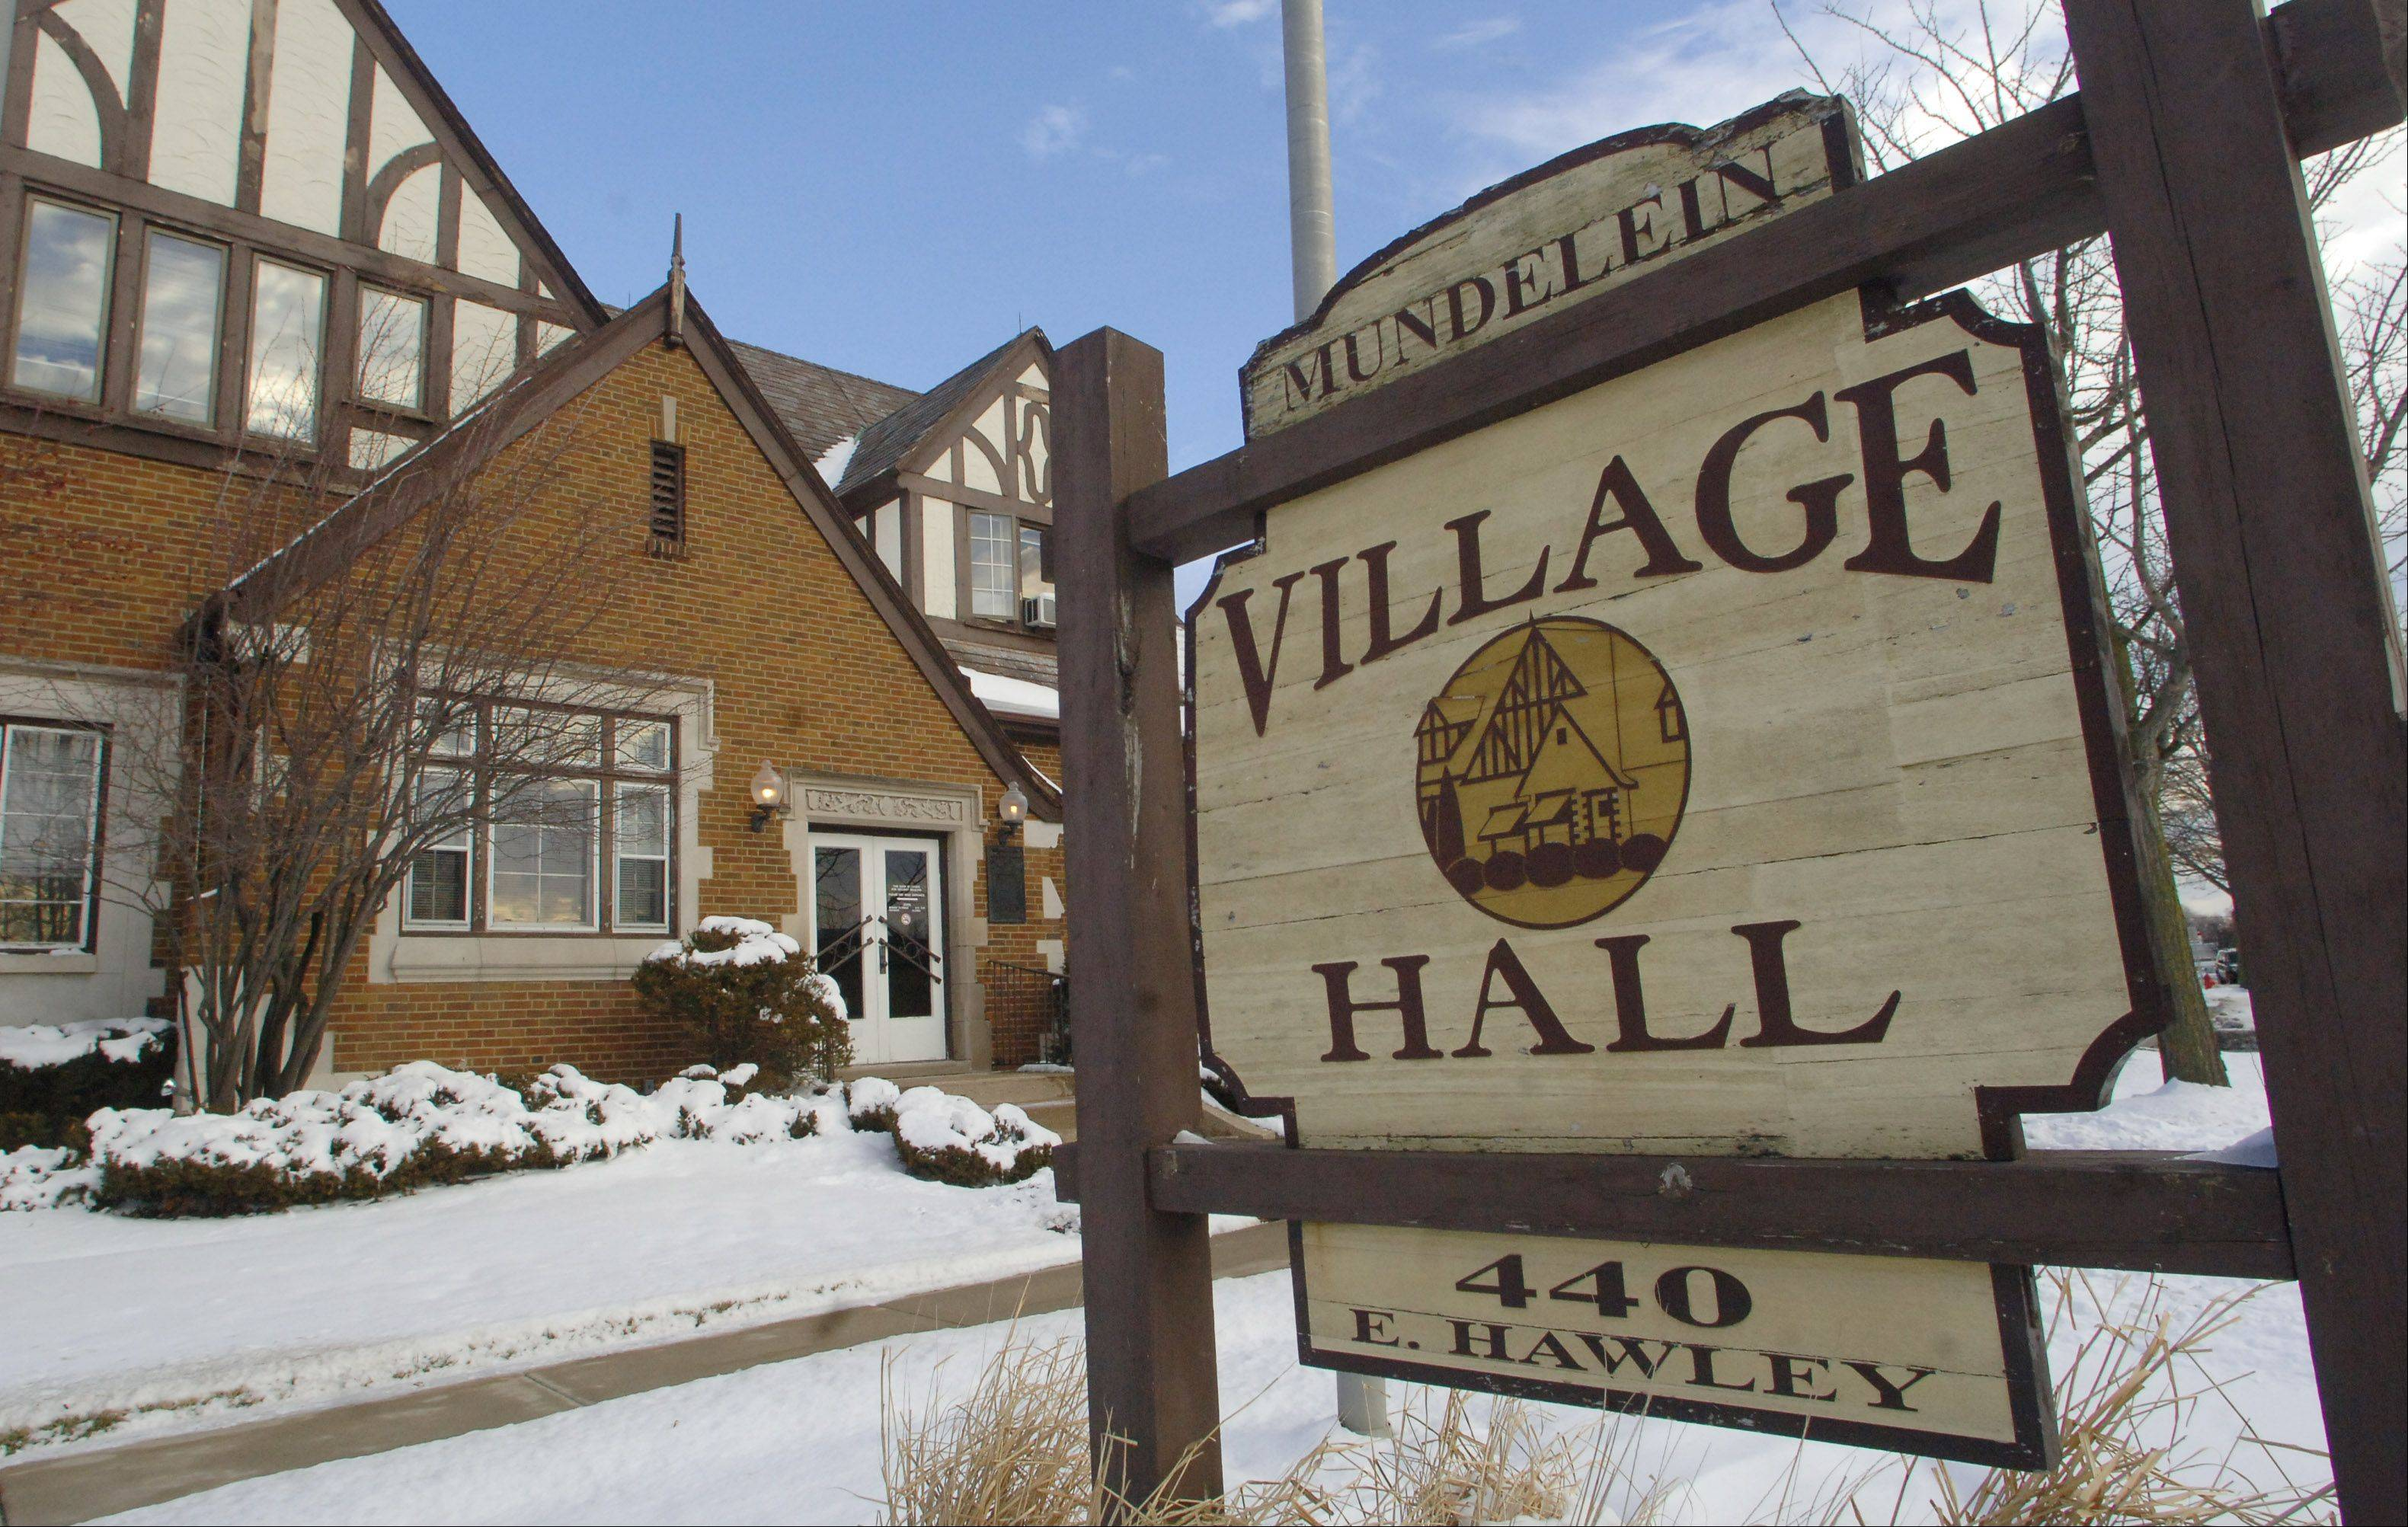 Two of Mundelein's mayoral candidates believe the village hall staff must improve customer relations.